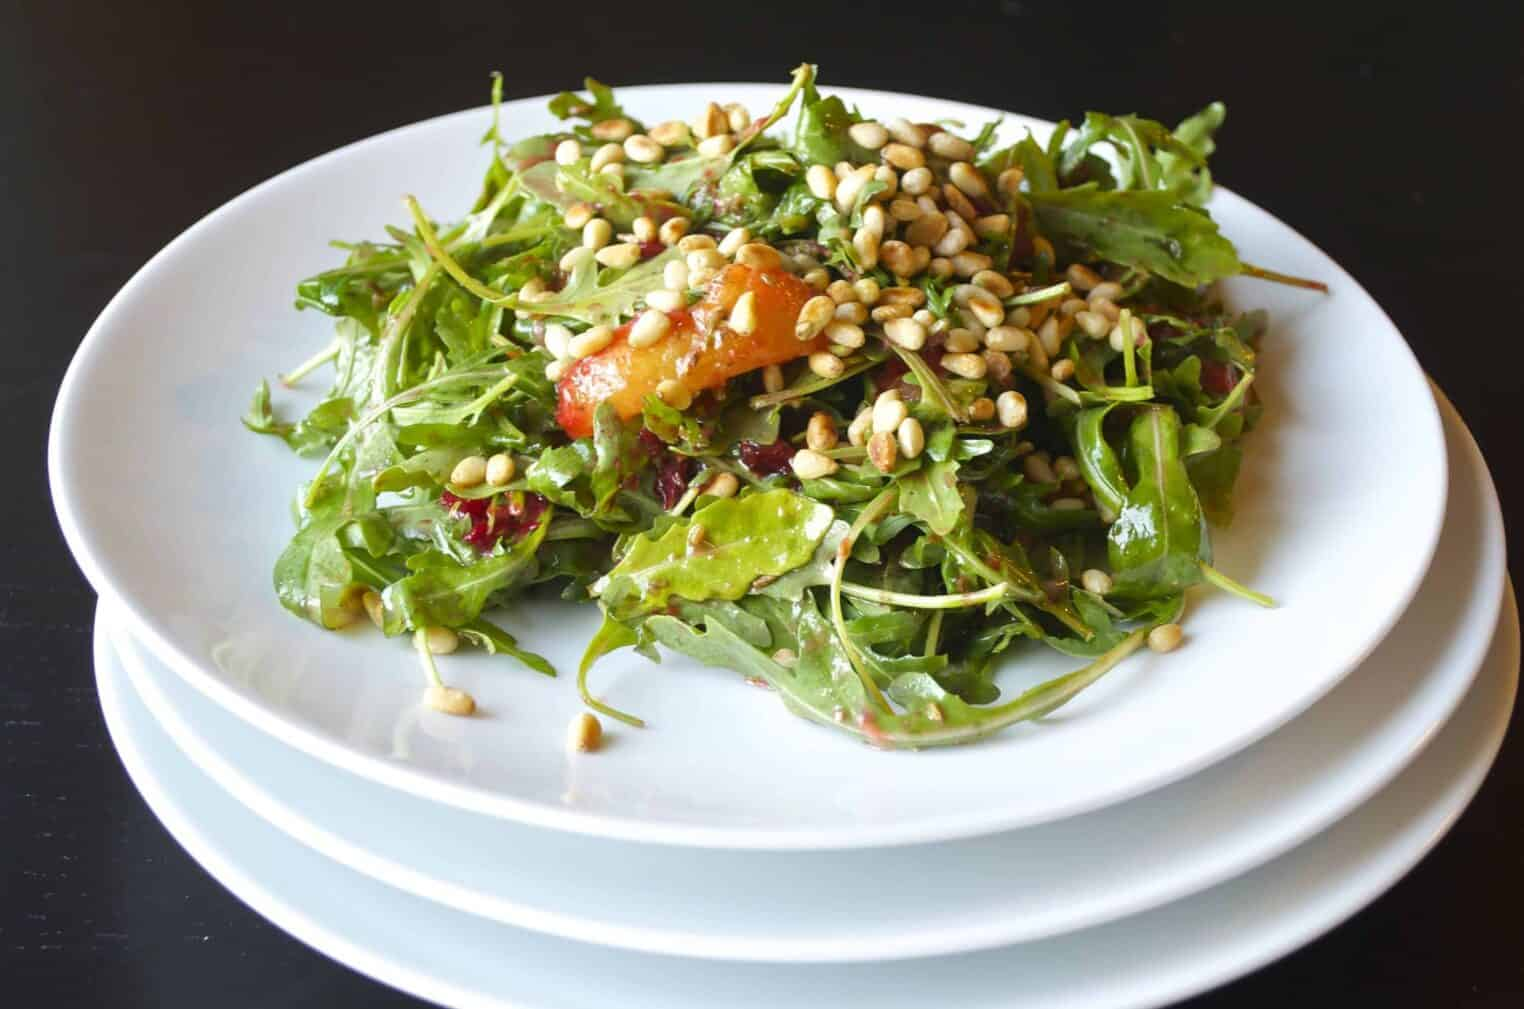 A healthy recipe of grilled plum and arugula salad with toasted pine nuts. Vegan and gluten-free.